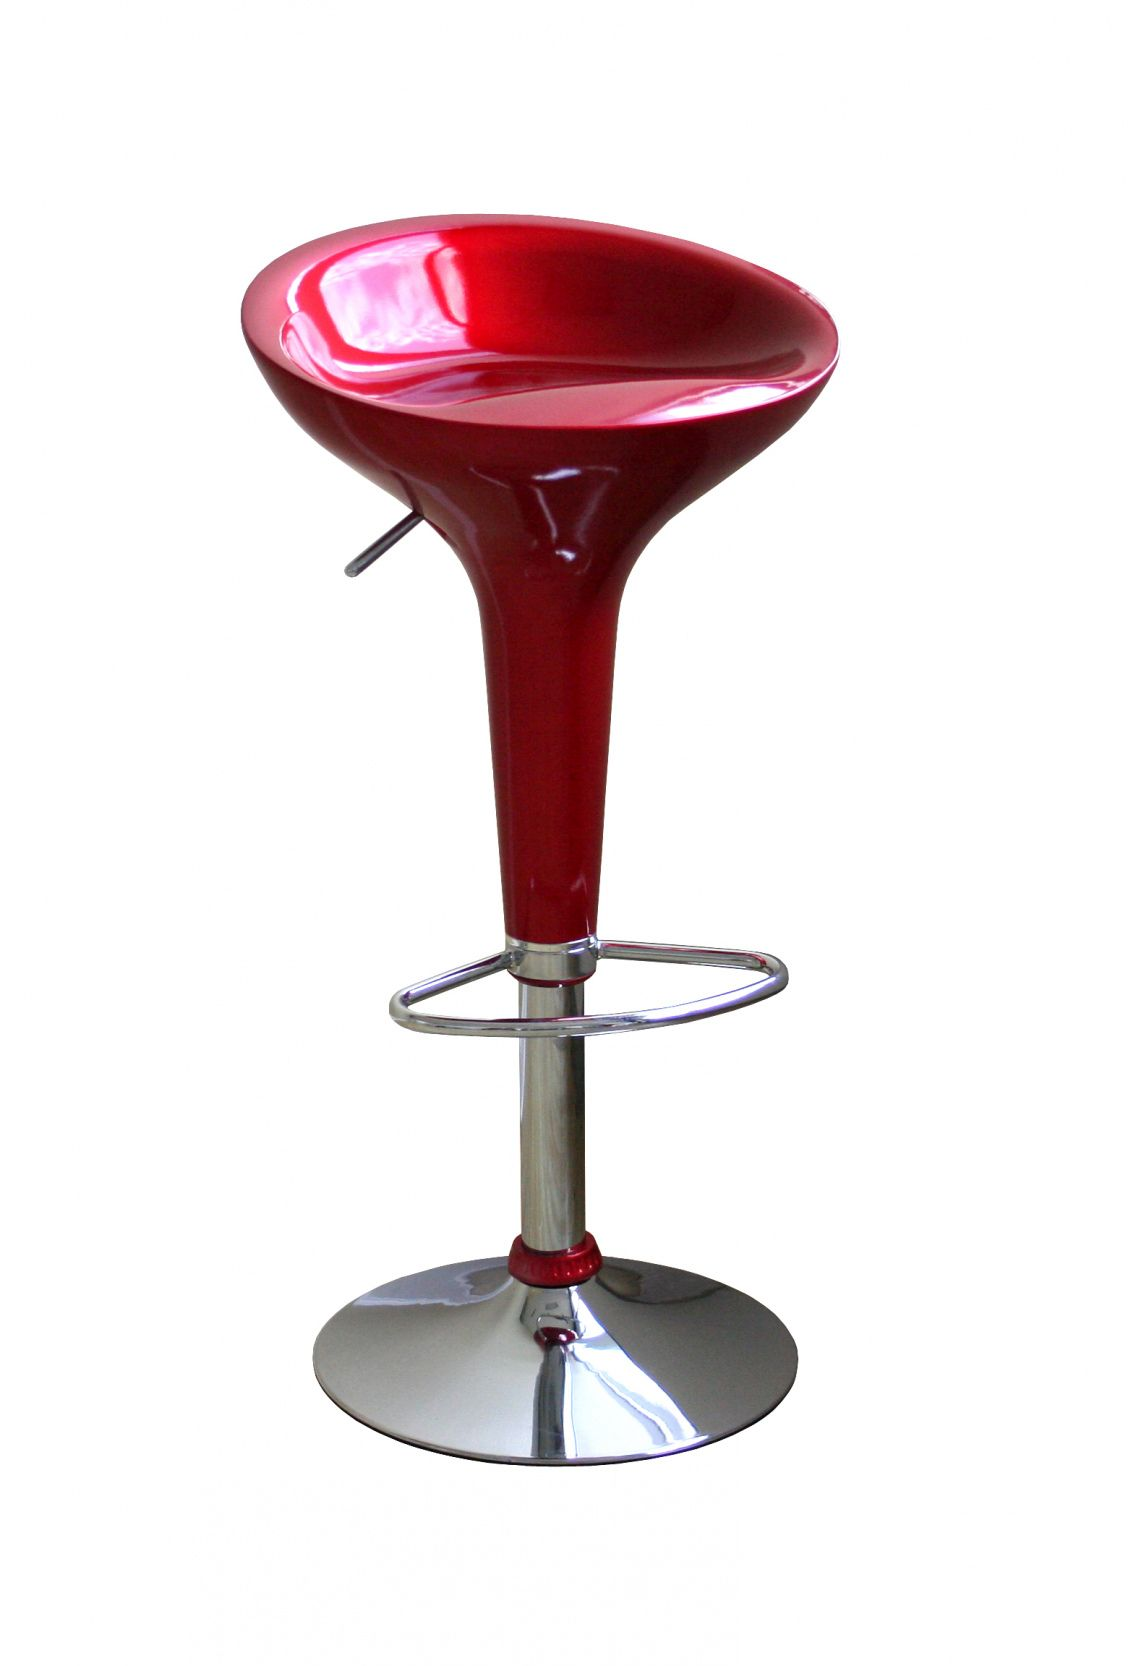 red bar stool chairs